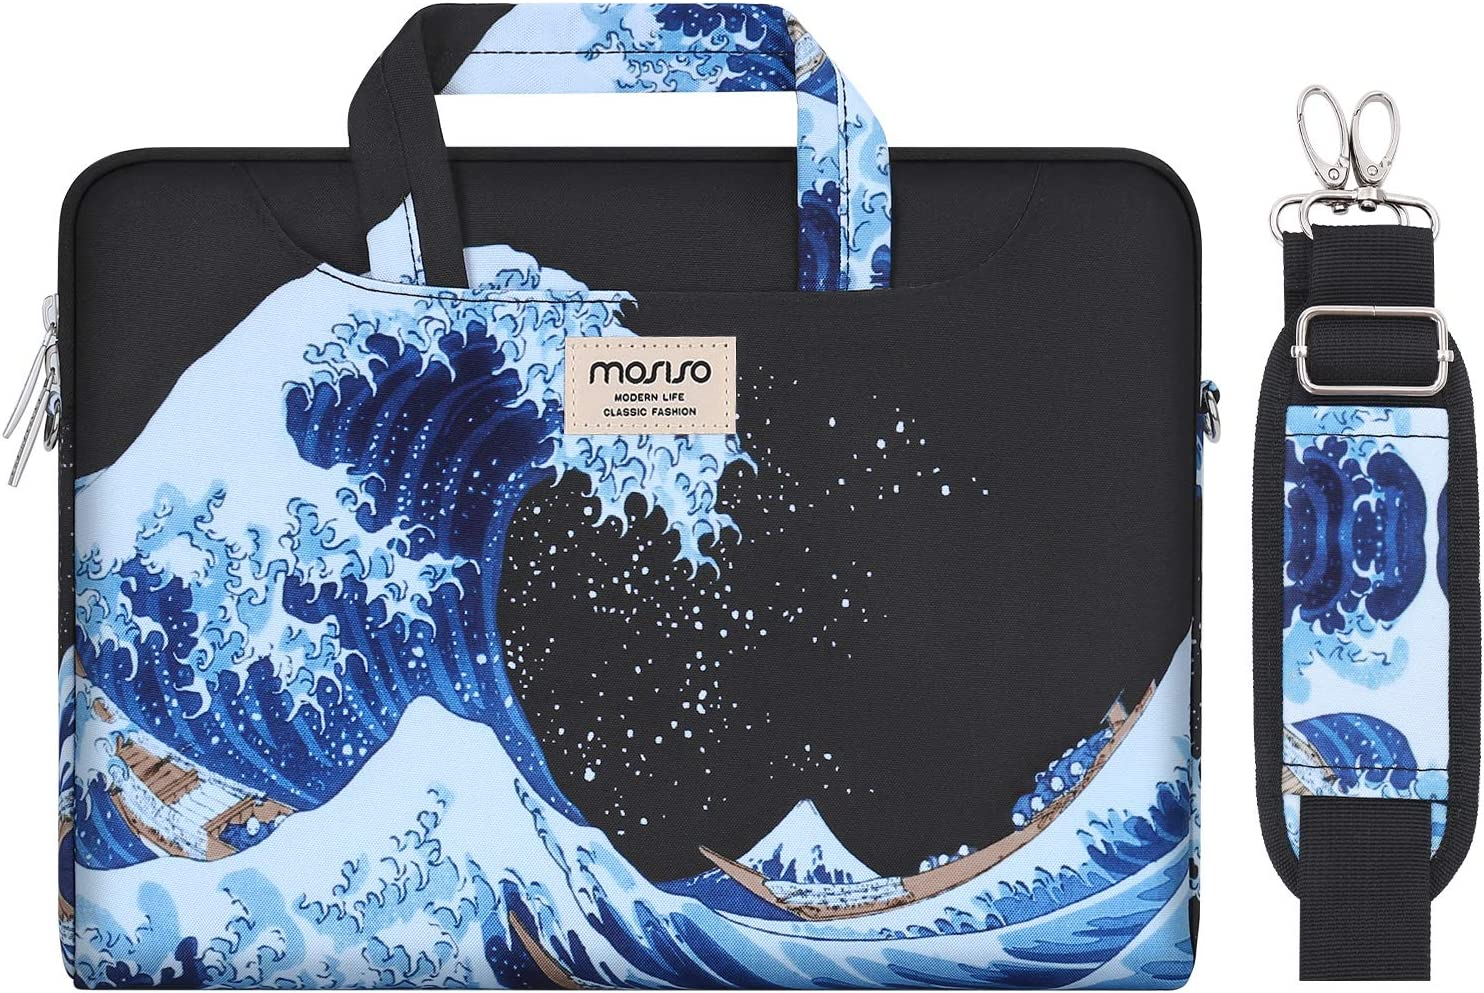 MOSISO Laptop Shoulder Bag Compatible with 2019 MacBook Pro 16 inch A2141, 15 15.4 15.6 inch Dell Lenovo HP Asus Acer Samsung Sony Chromebook, Sea Wave Carrying Briefcase Sleeve Case with Trolley Belt